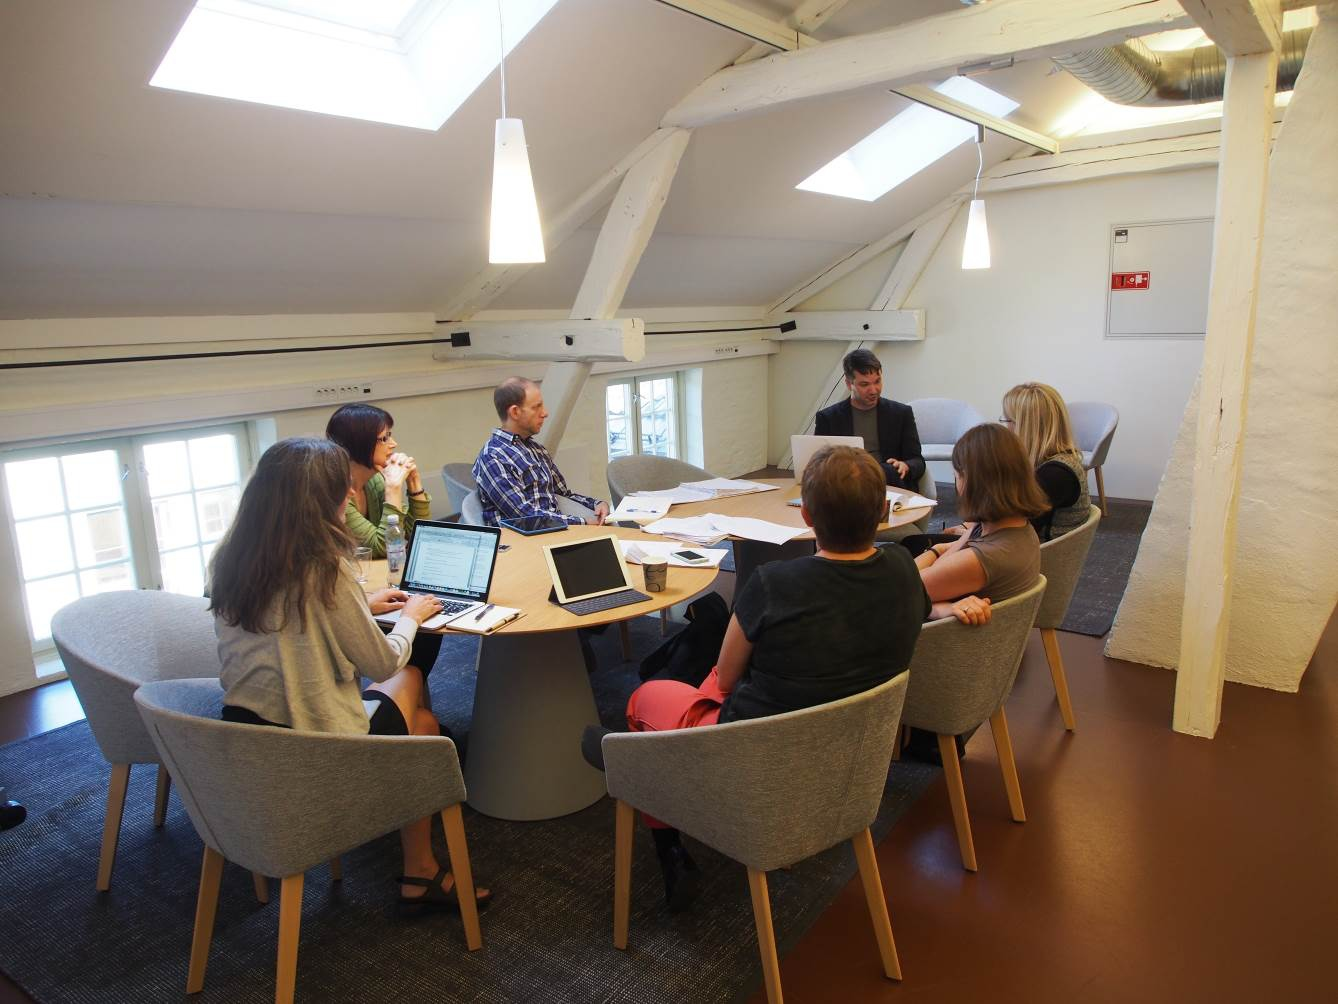 Workshop of the panel exploring food-related issues of intimacy, abstraction, scale, and context (Photo: Wim van Daele).